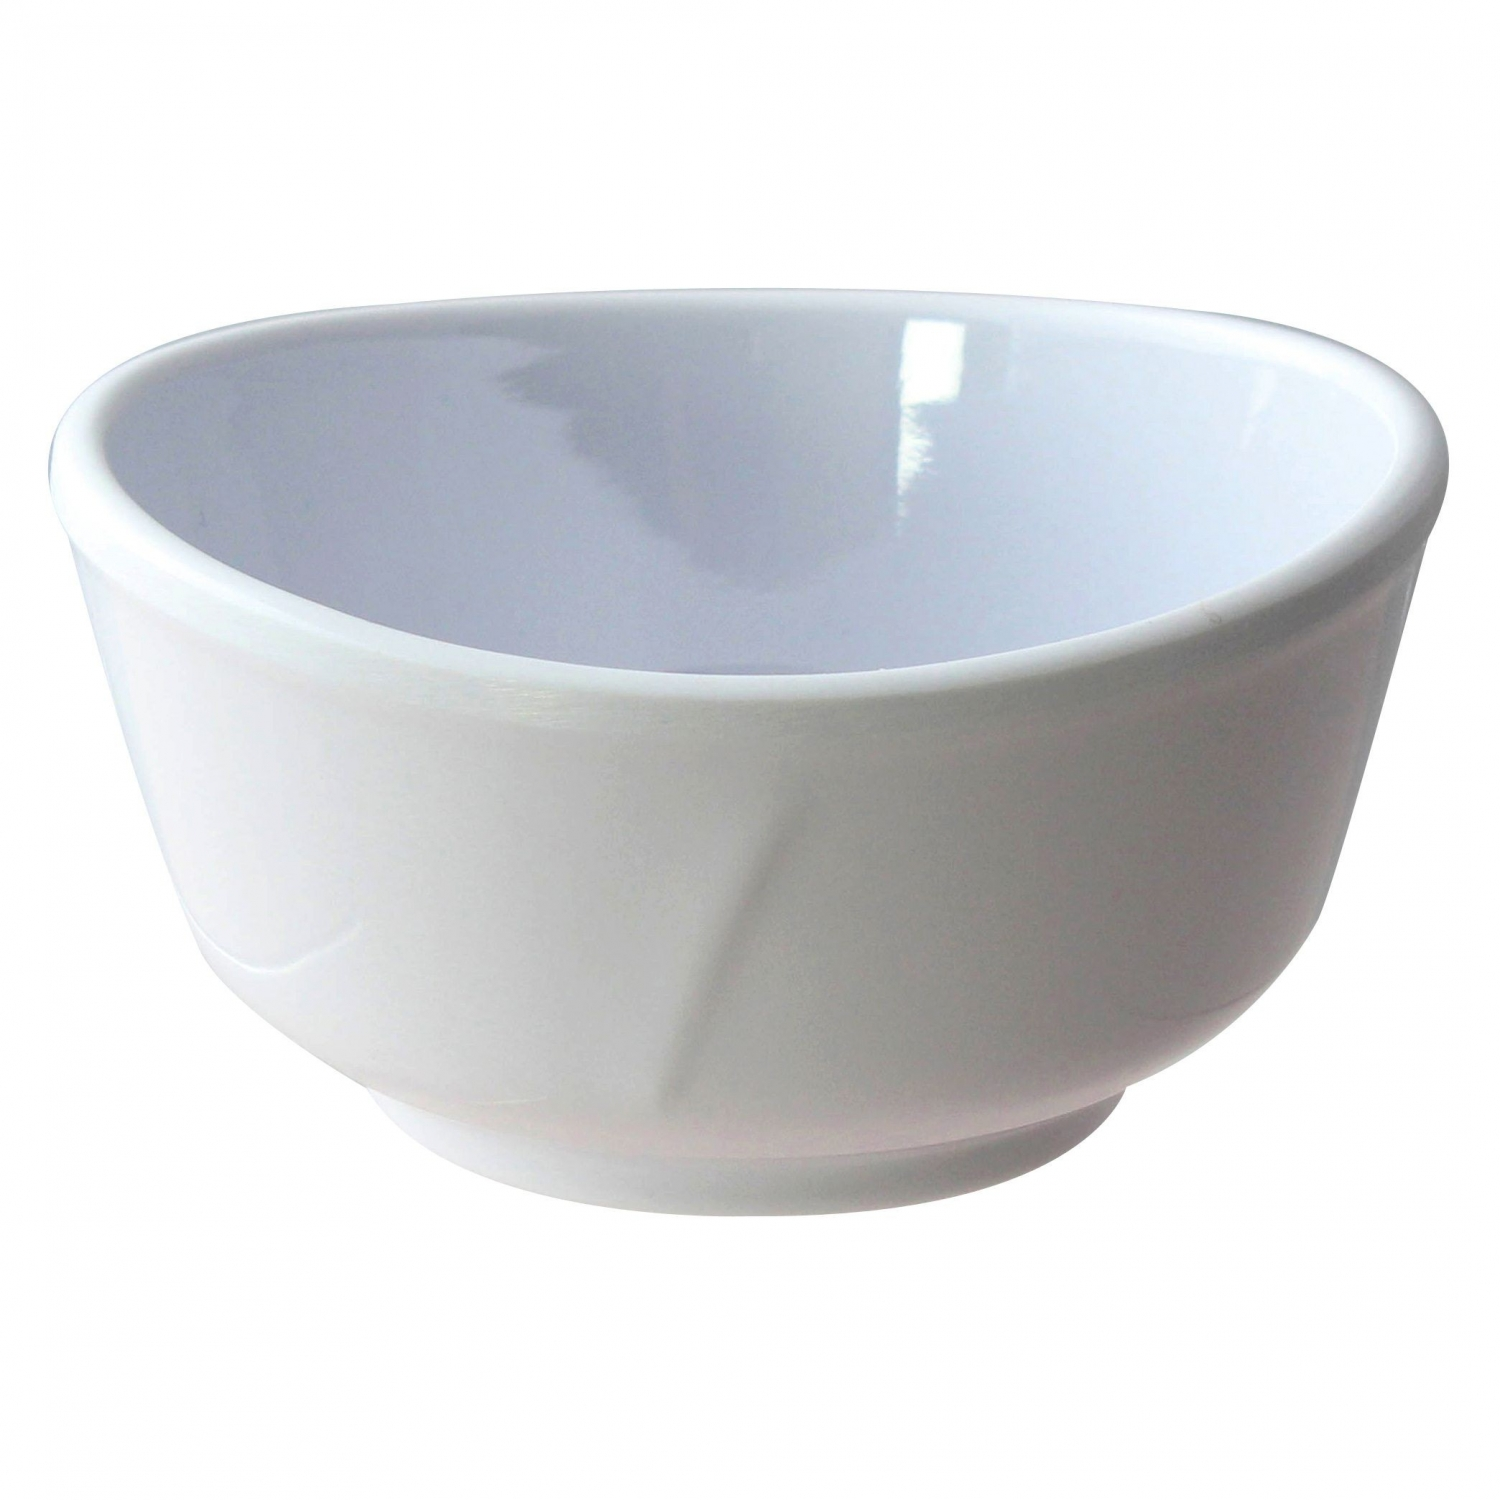 Thunder Group 39045WT Round Classic White Series Bowl 11 oz. - 1 doz